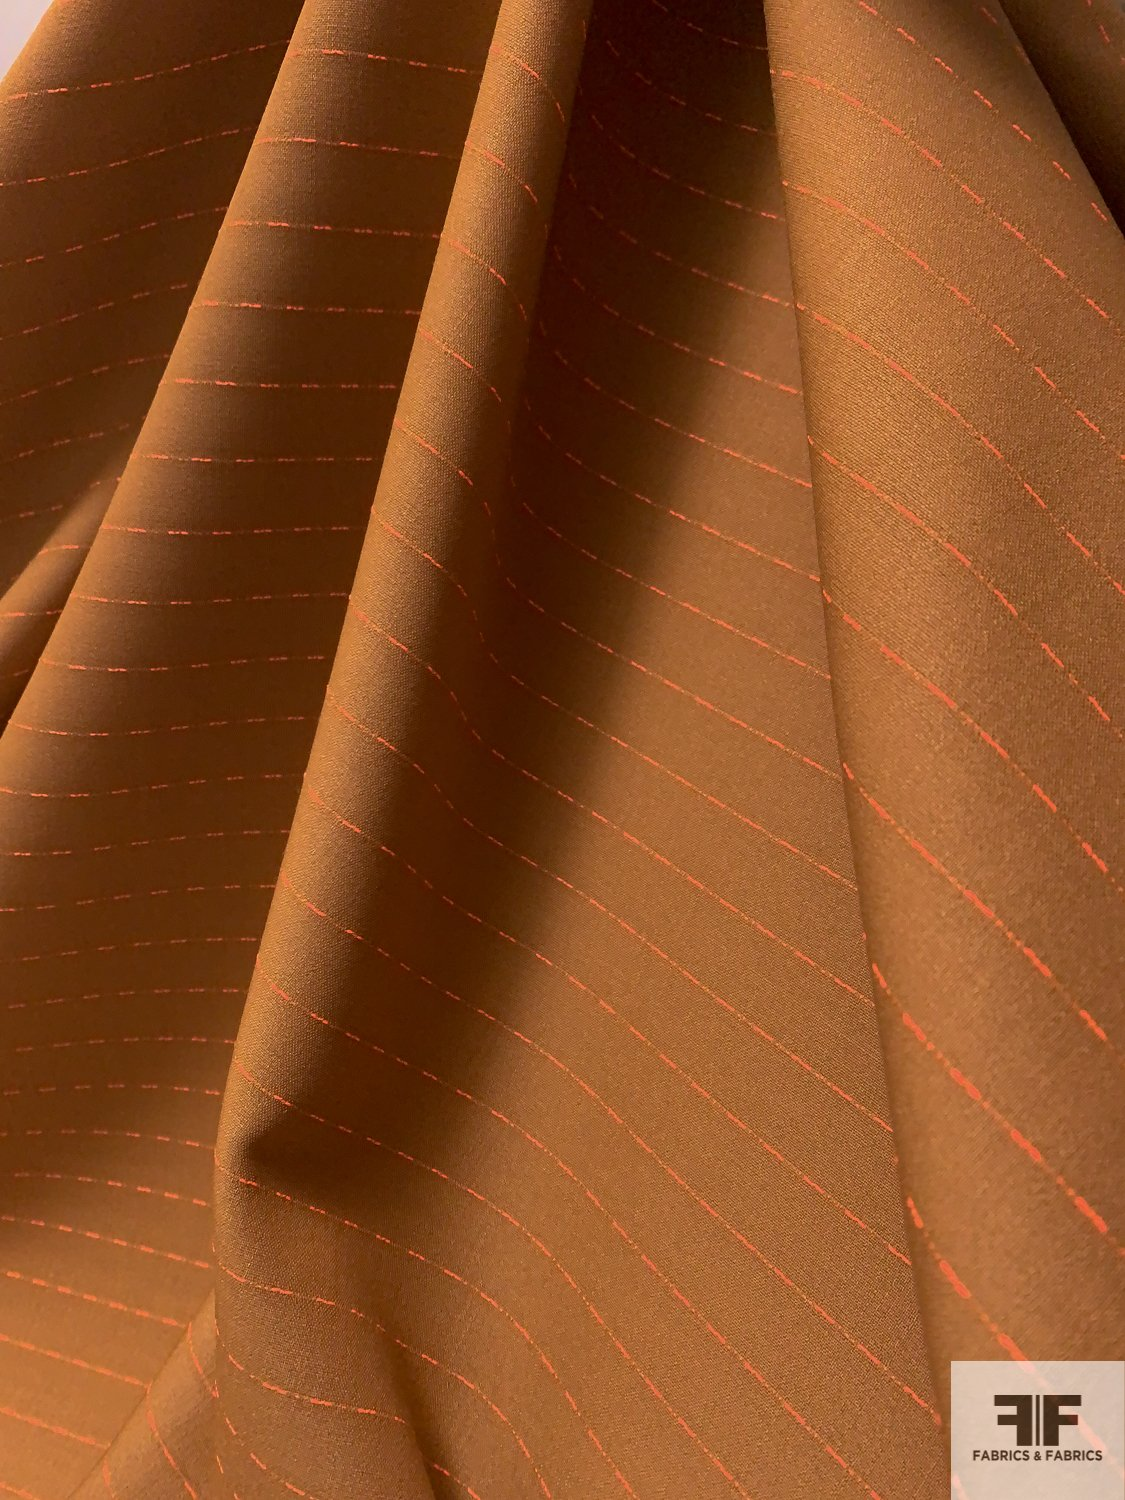 Made in Italy Virgin Wool Blend Suiting with Finely Woven Stripes - Caramel / Neon Orange